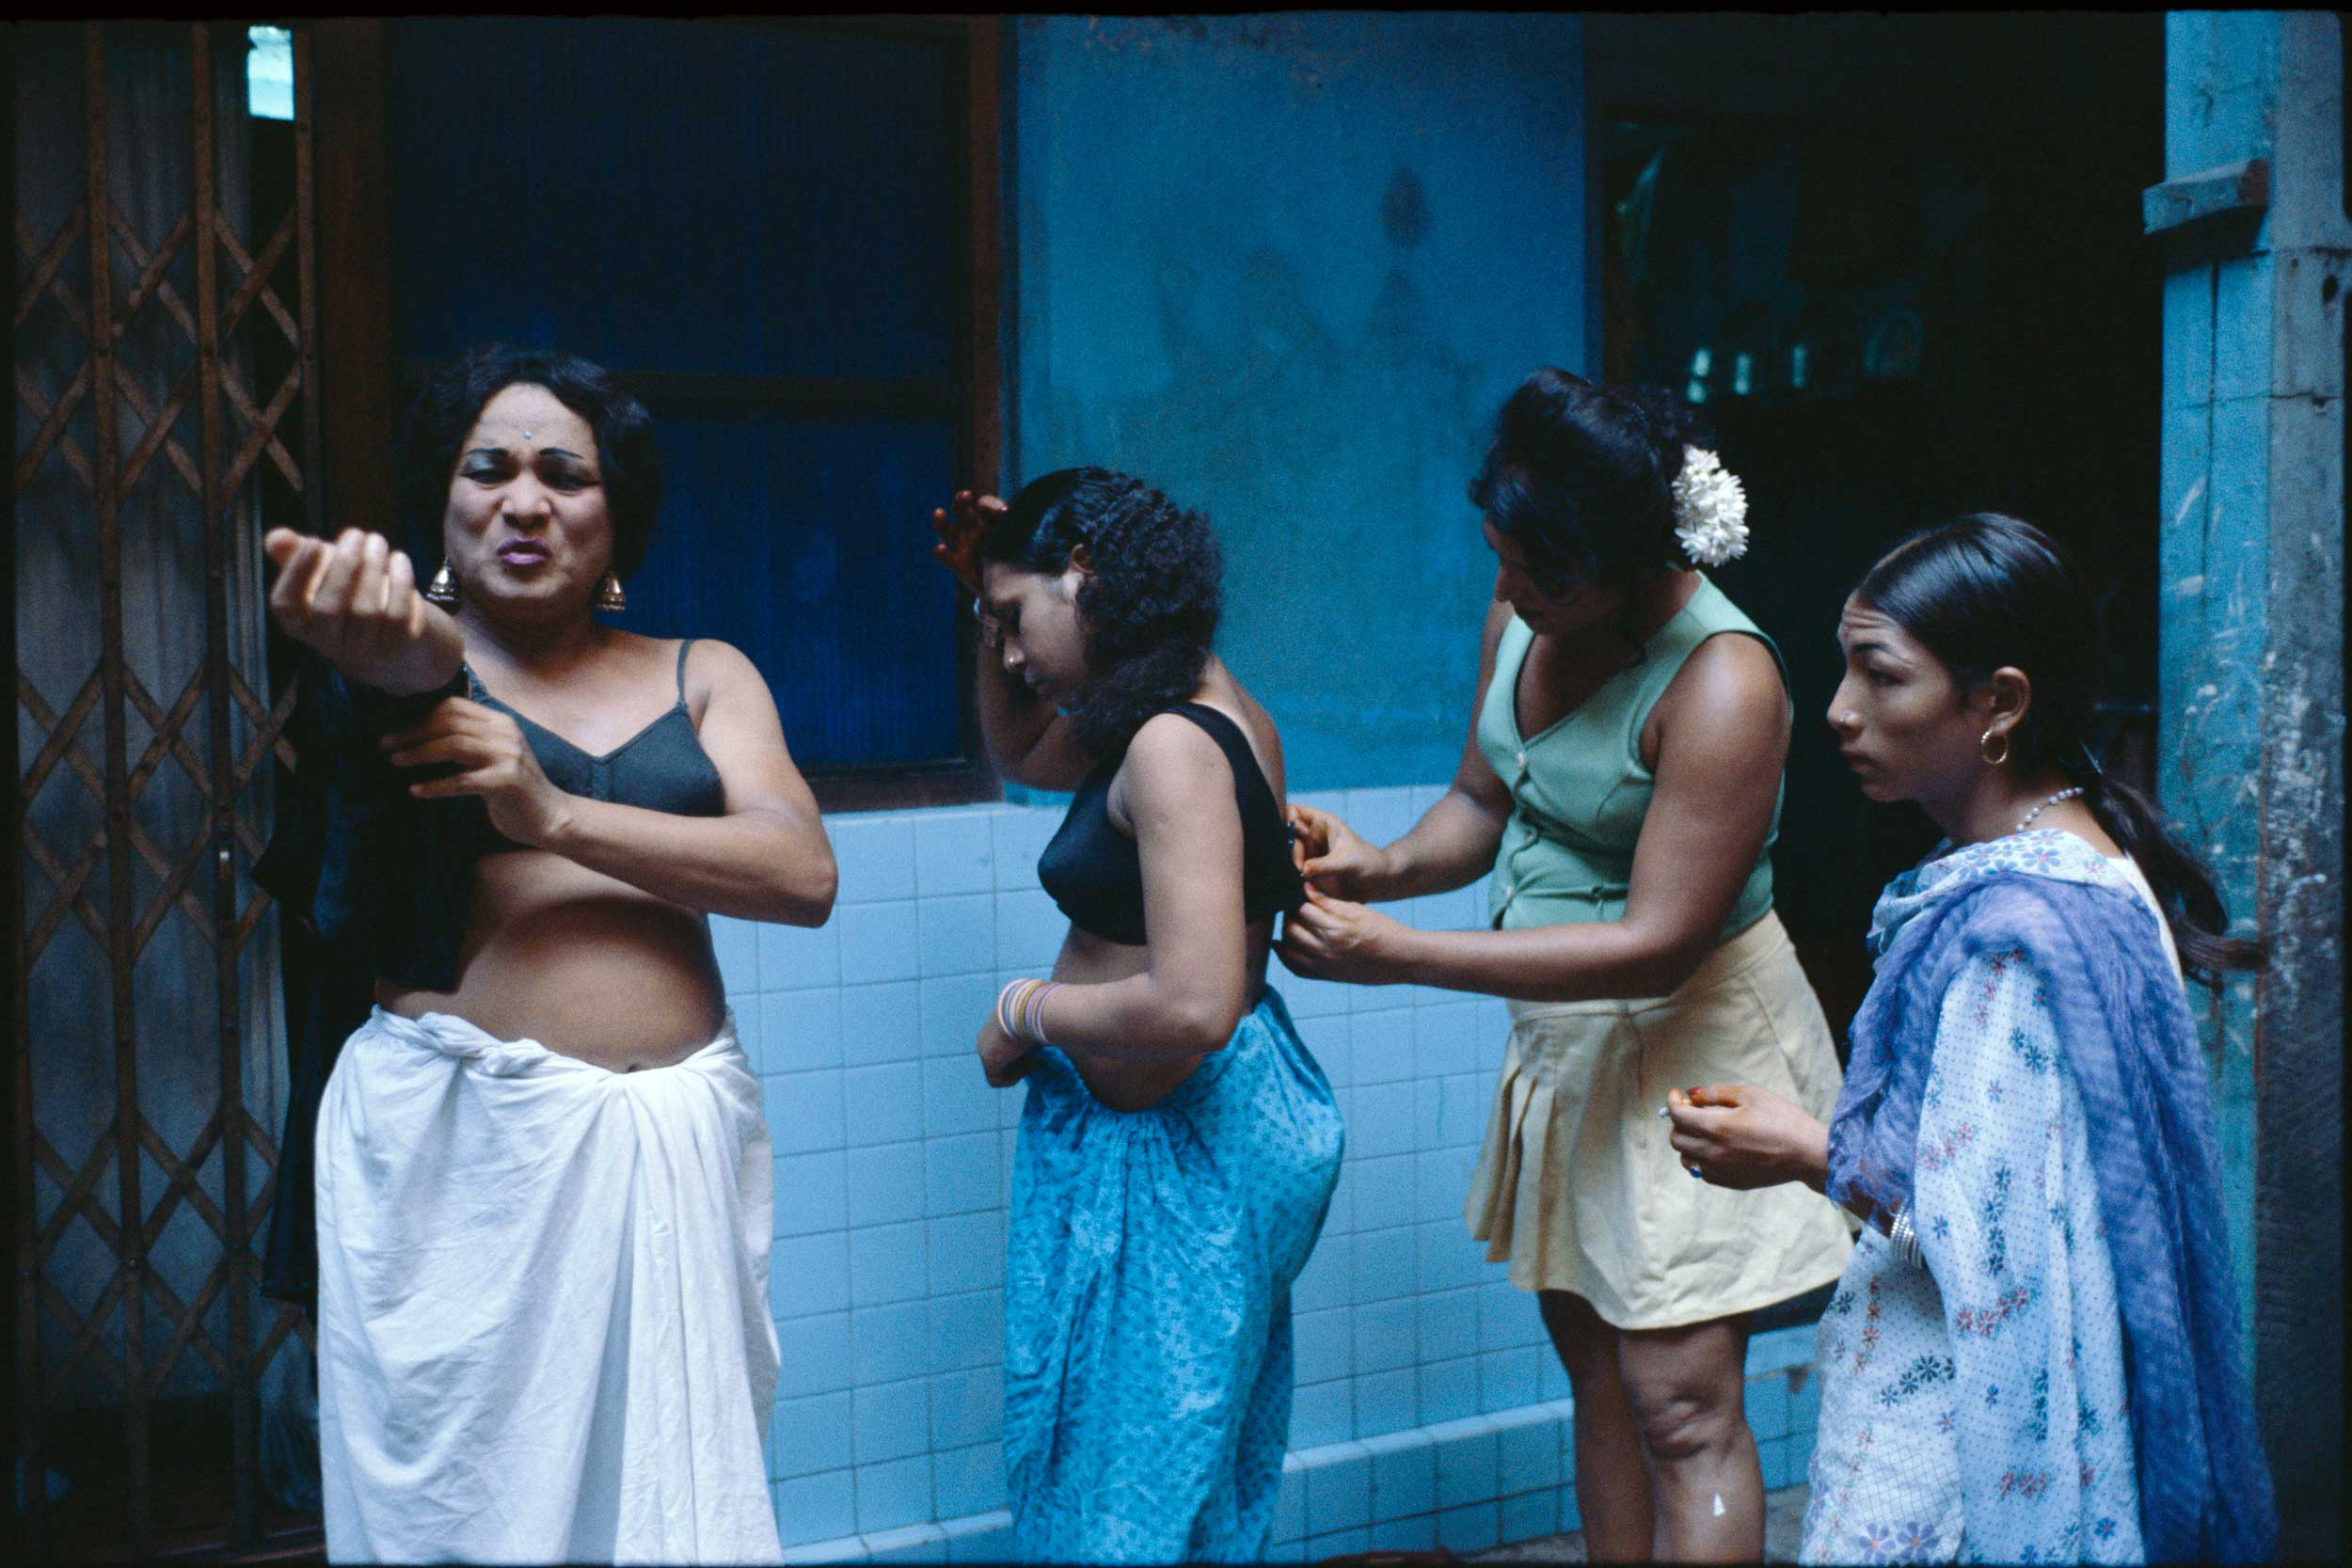 Transvestites getting dressed in a courtyard. 1978.